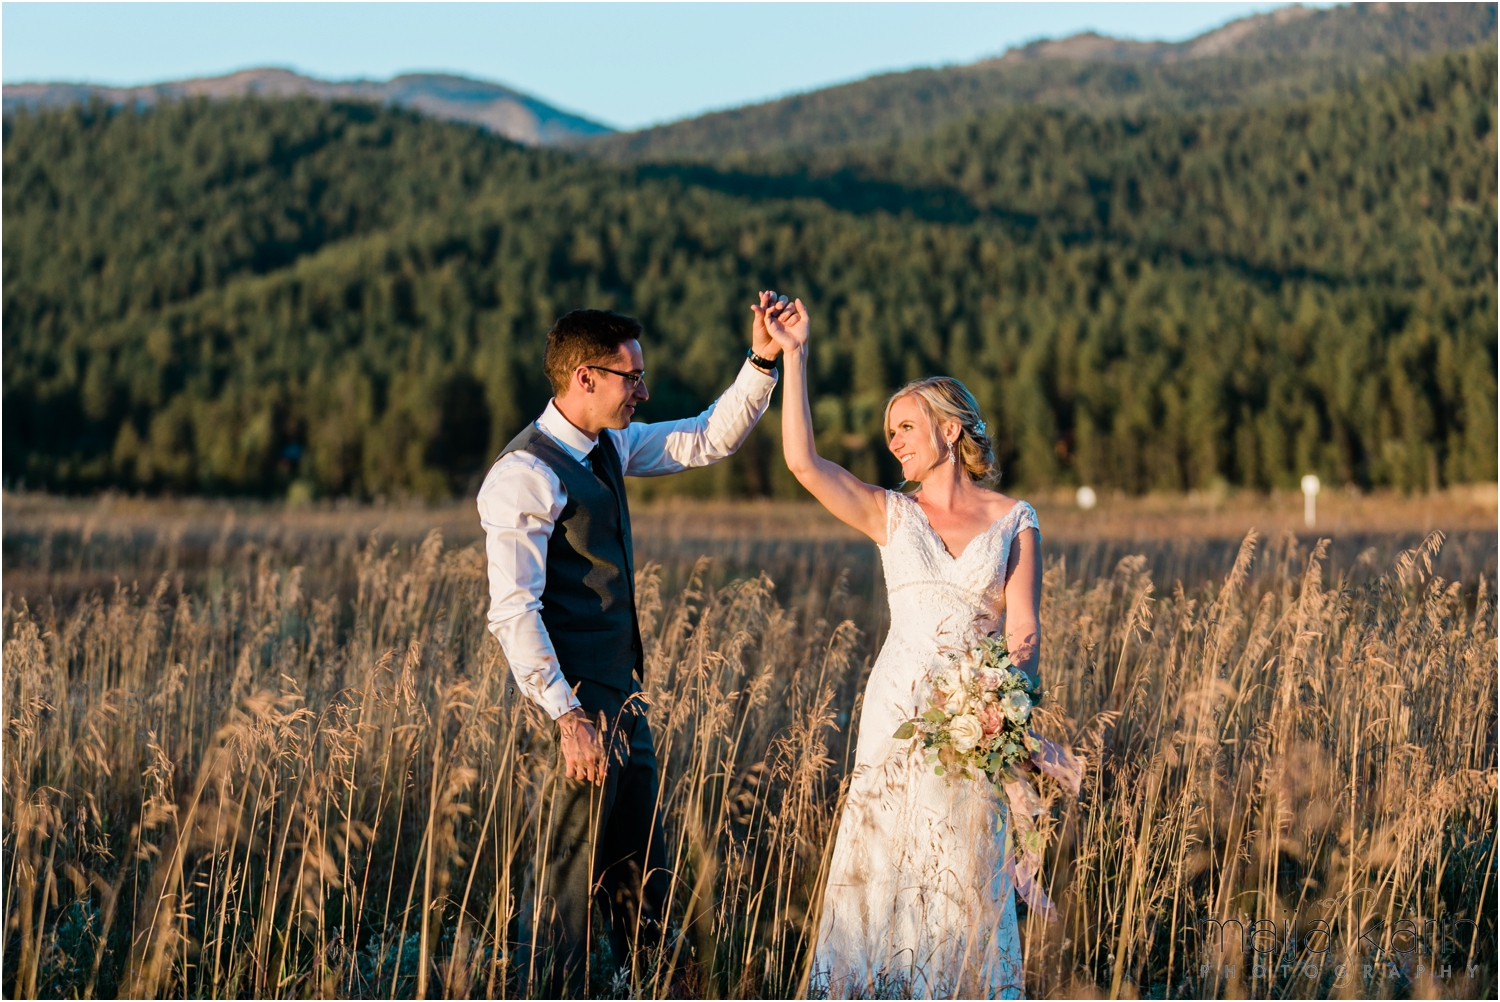 McCall-Idaho-Wedding-Maija-Karin-Photography_0078.jpg